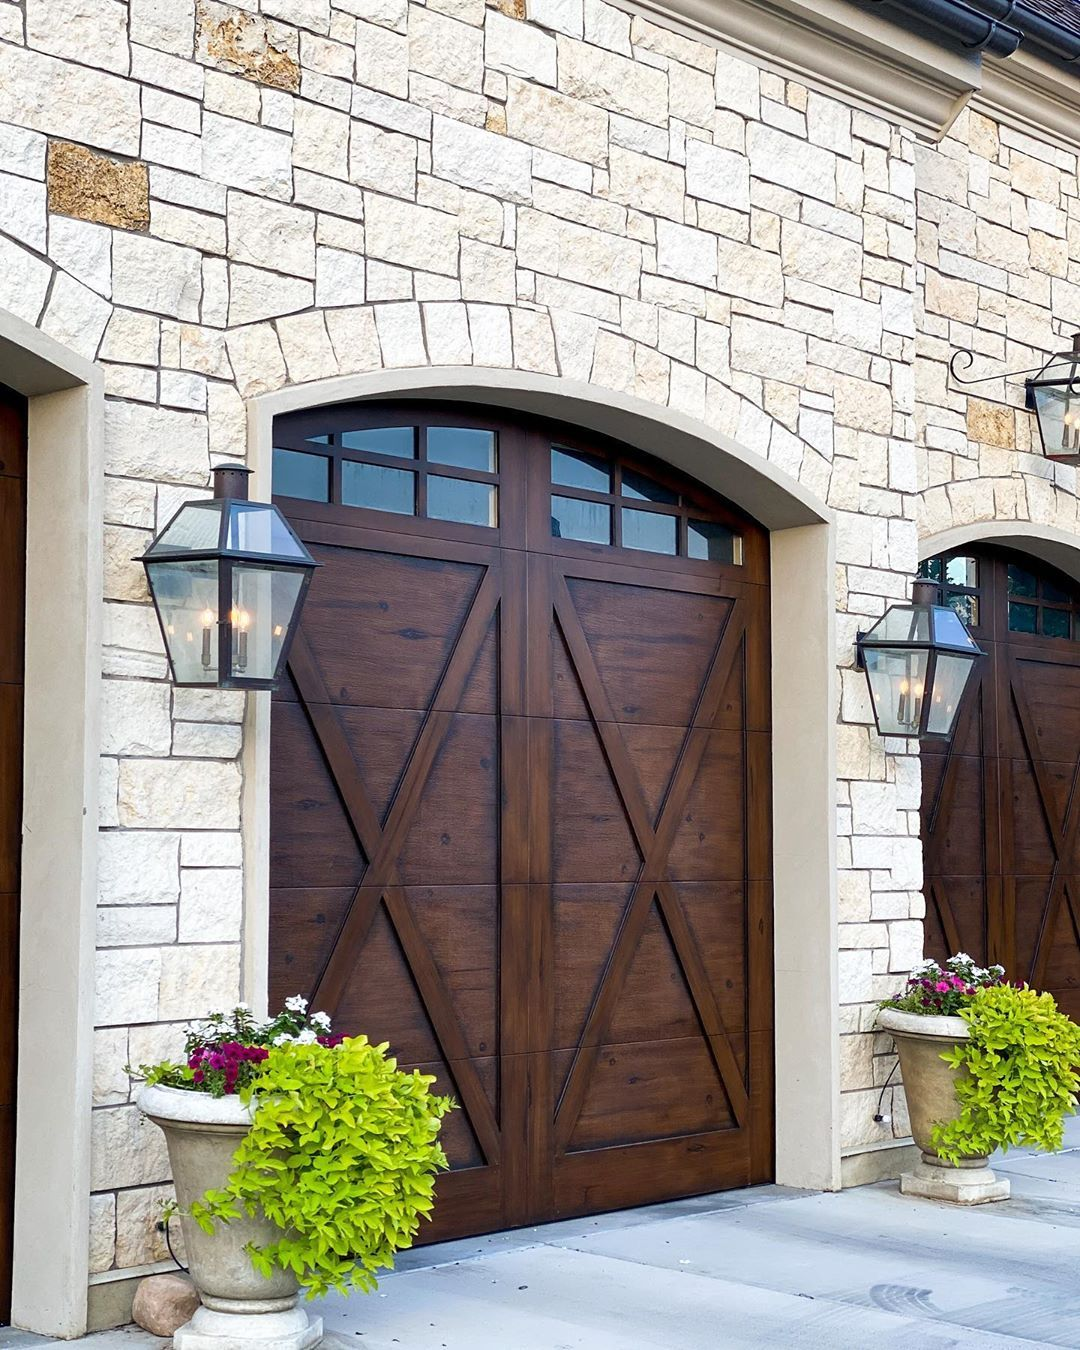 2 395 Likes 99 Comments Holly J Homewithhollyj On Instagram We Had Our Garage Doors At The Highland House Refin In 2020 Highland Homes Autumn Home French House